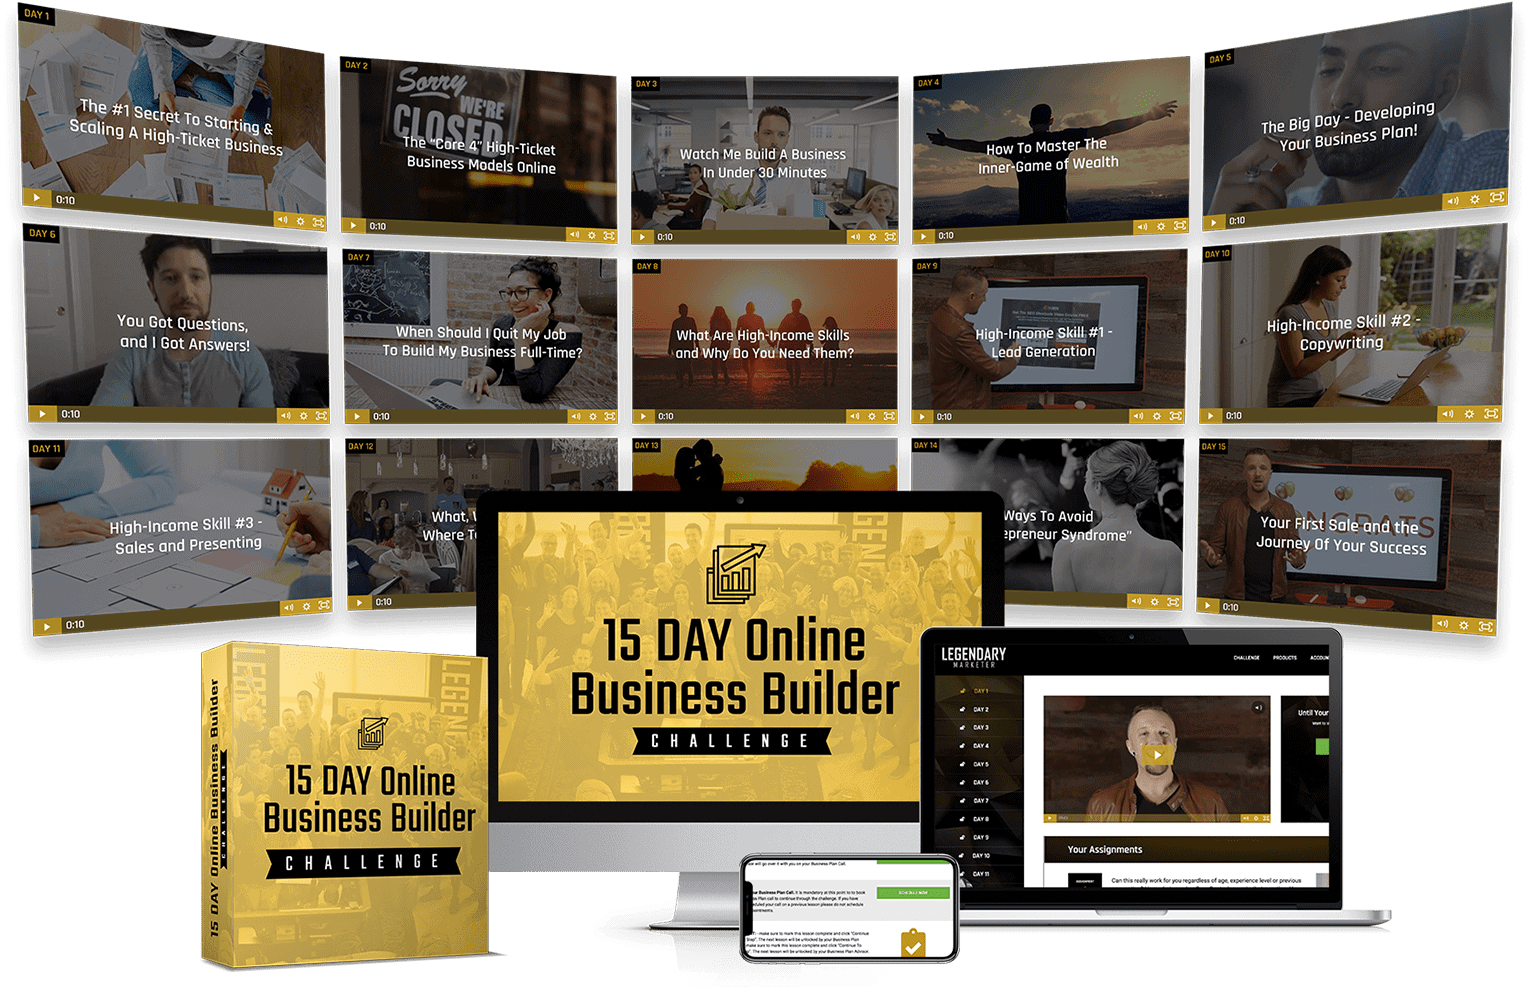 The Copywriters Playbook Review 19 The Copywriter's Playbook Review